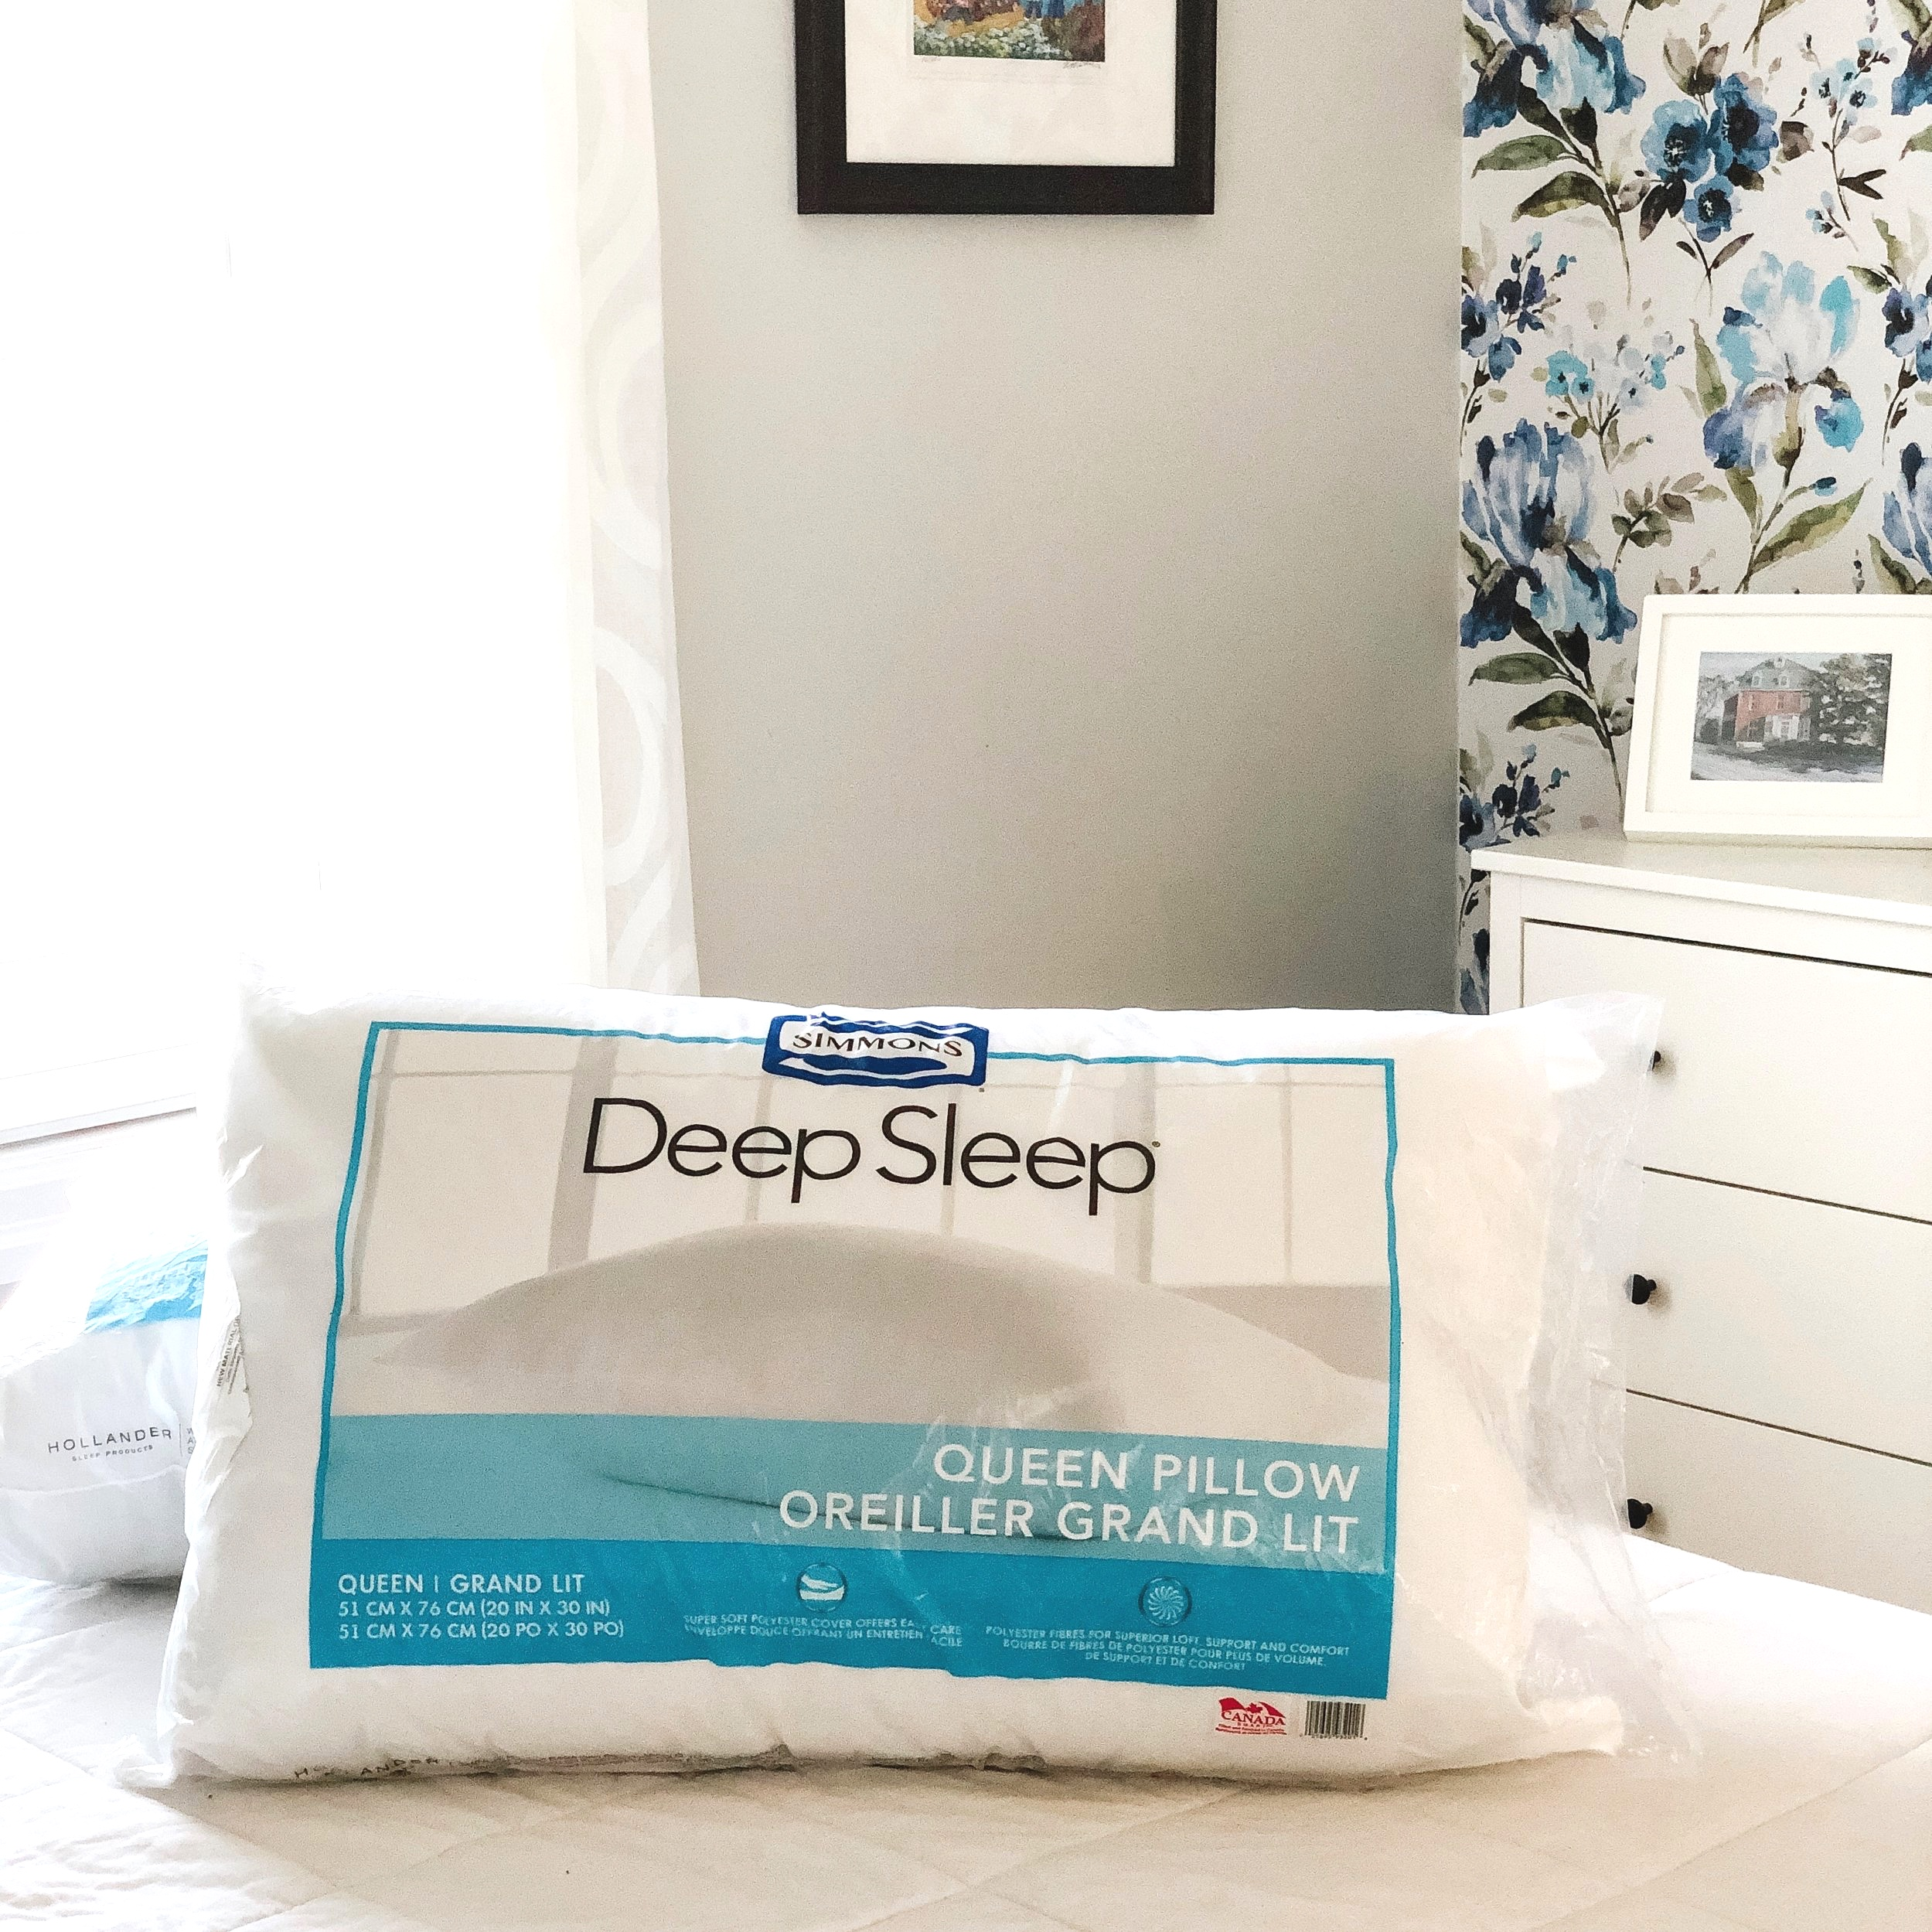 Simmons Deep Sleep Pillows $8/ea